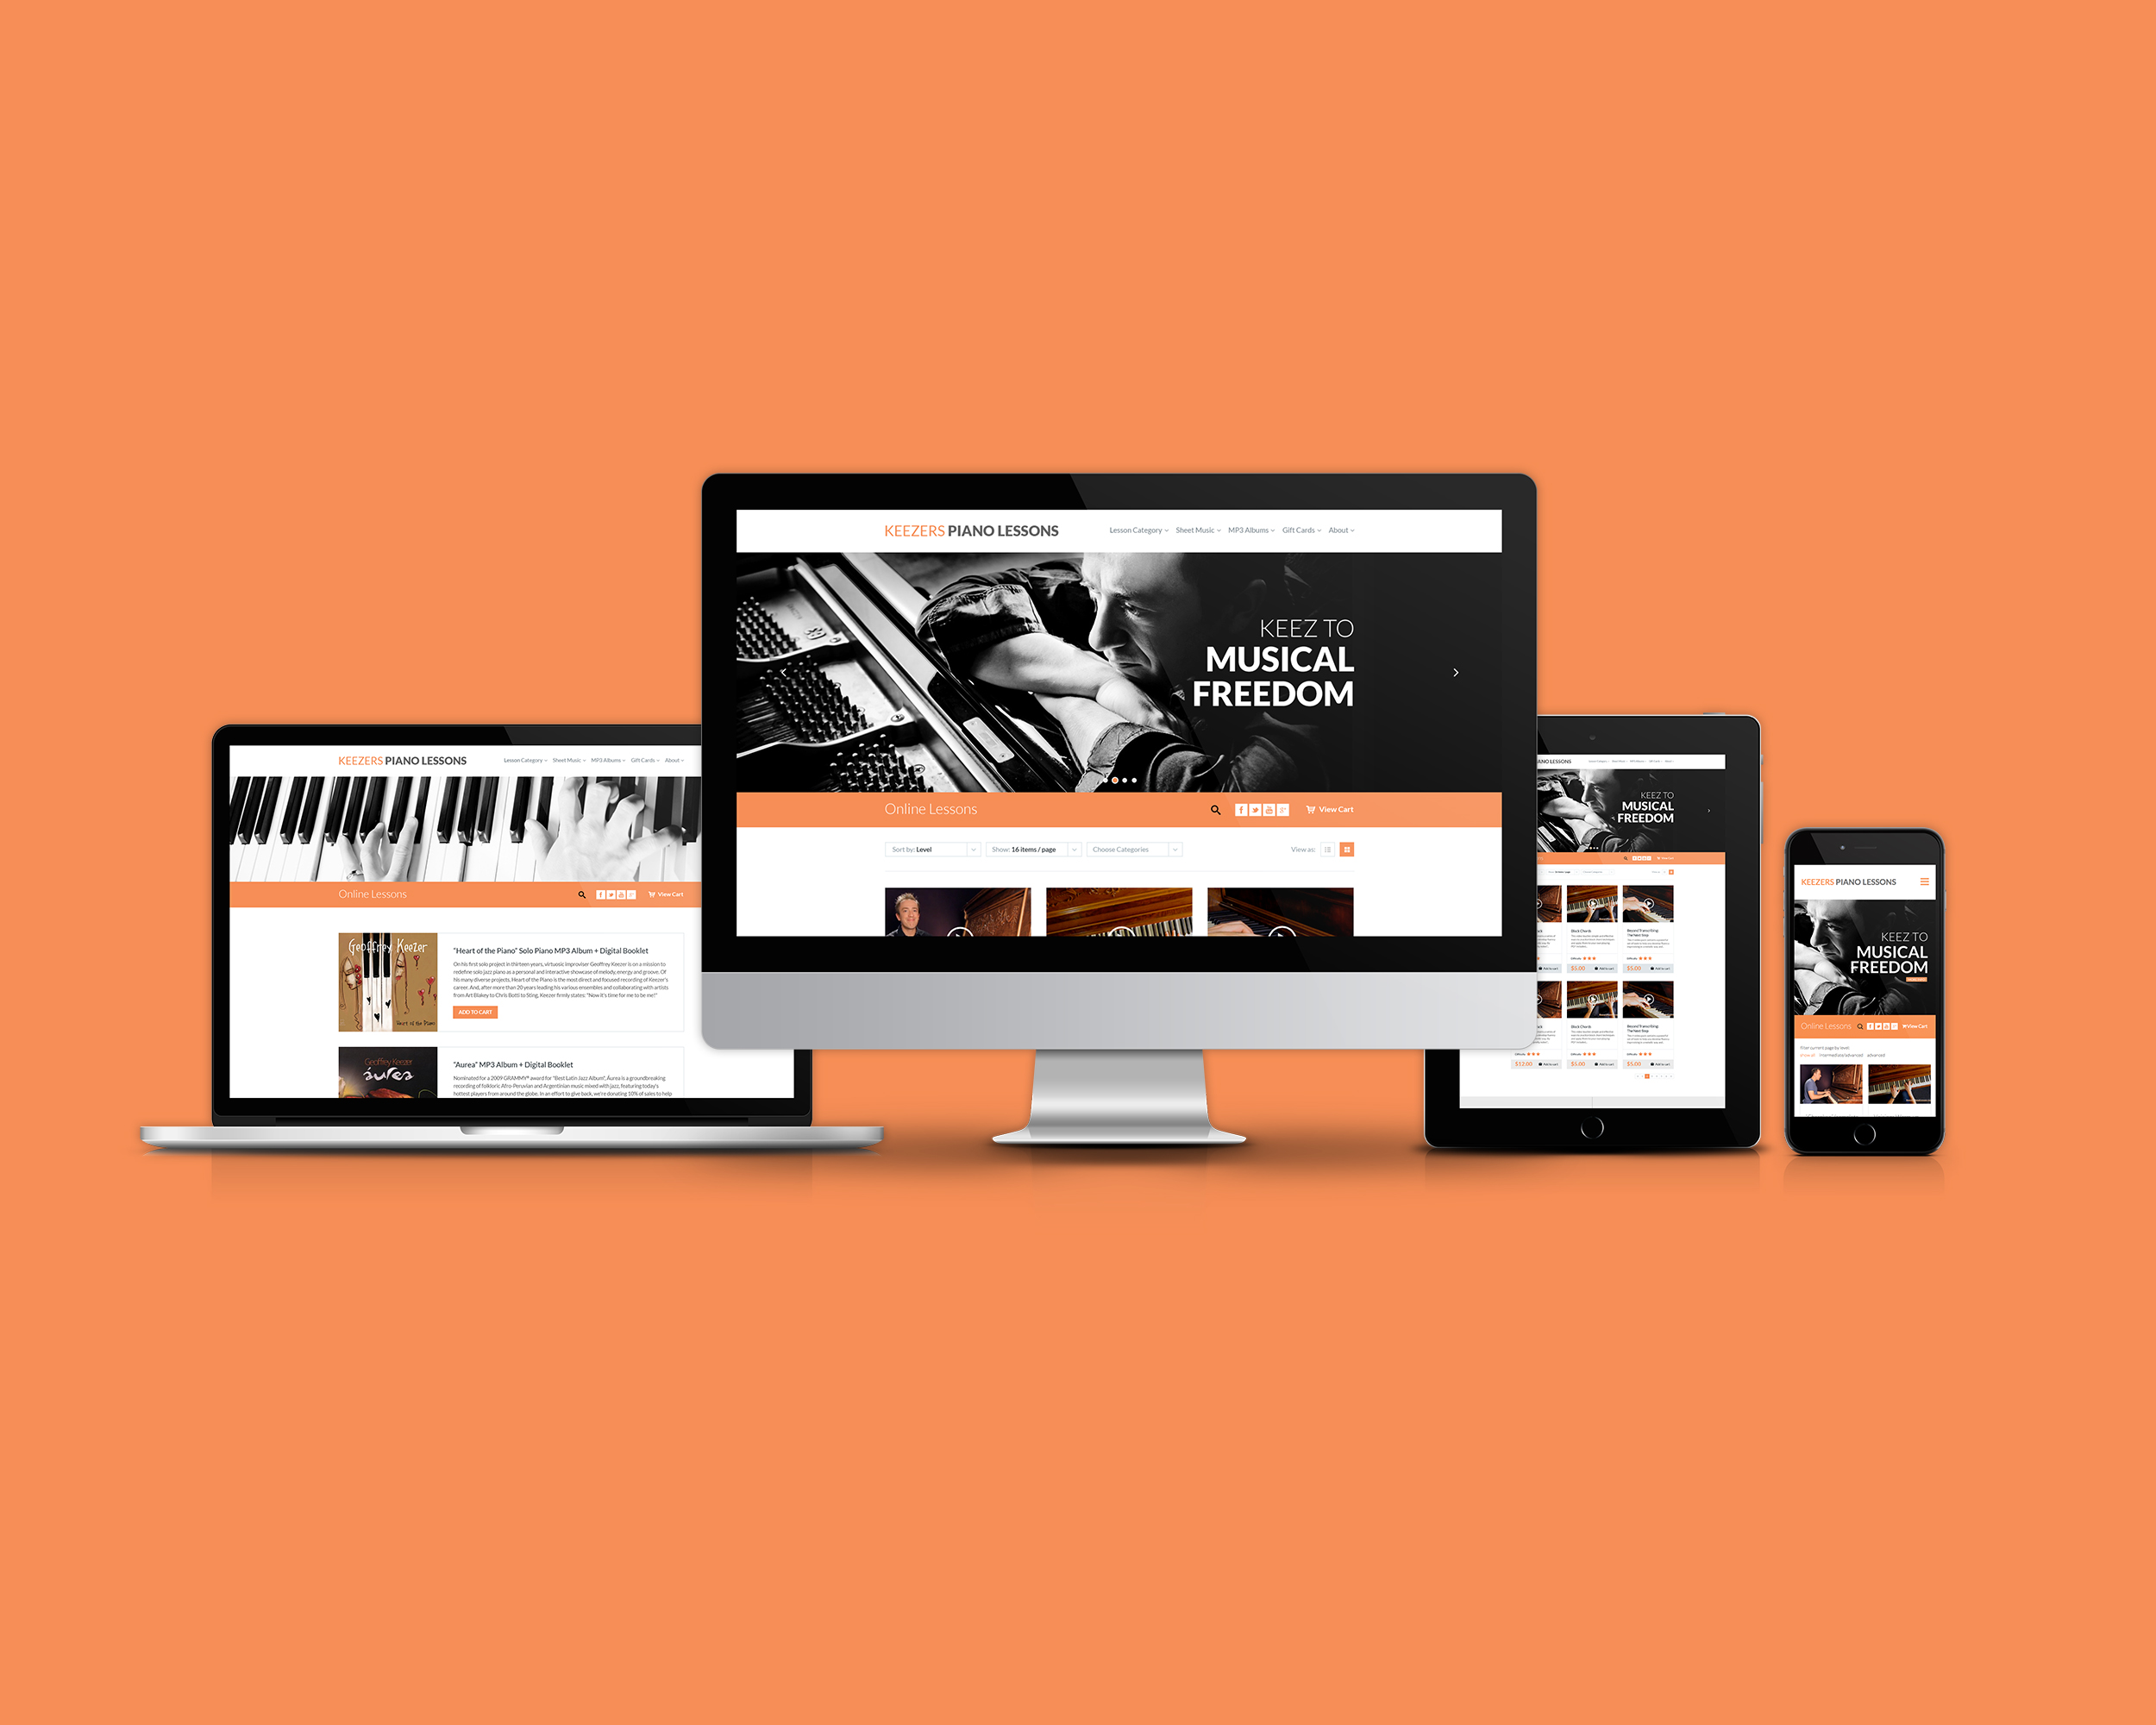 Keezer's Piano Lessons Website